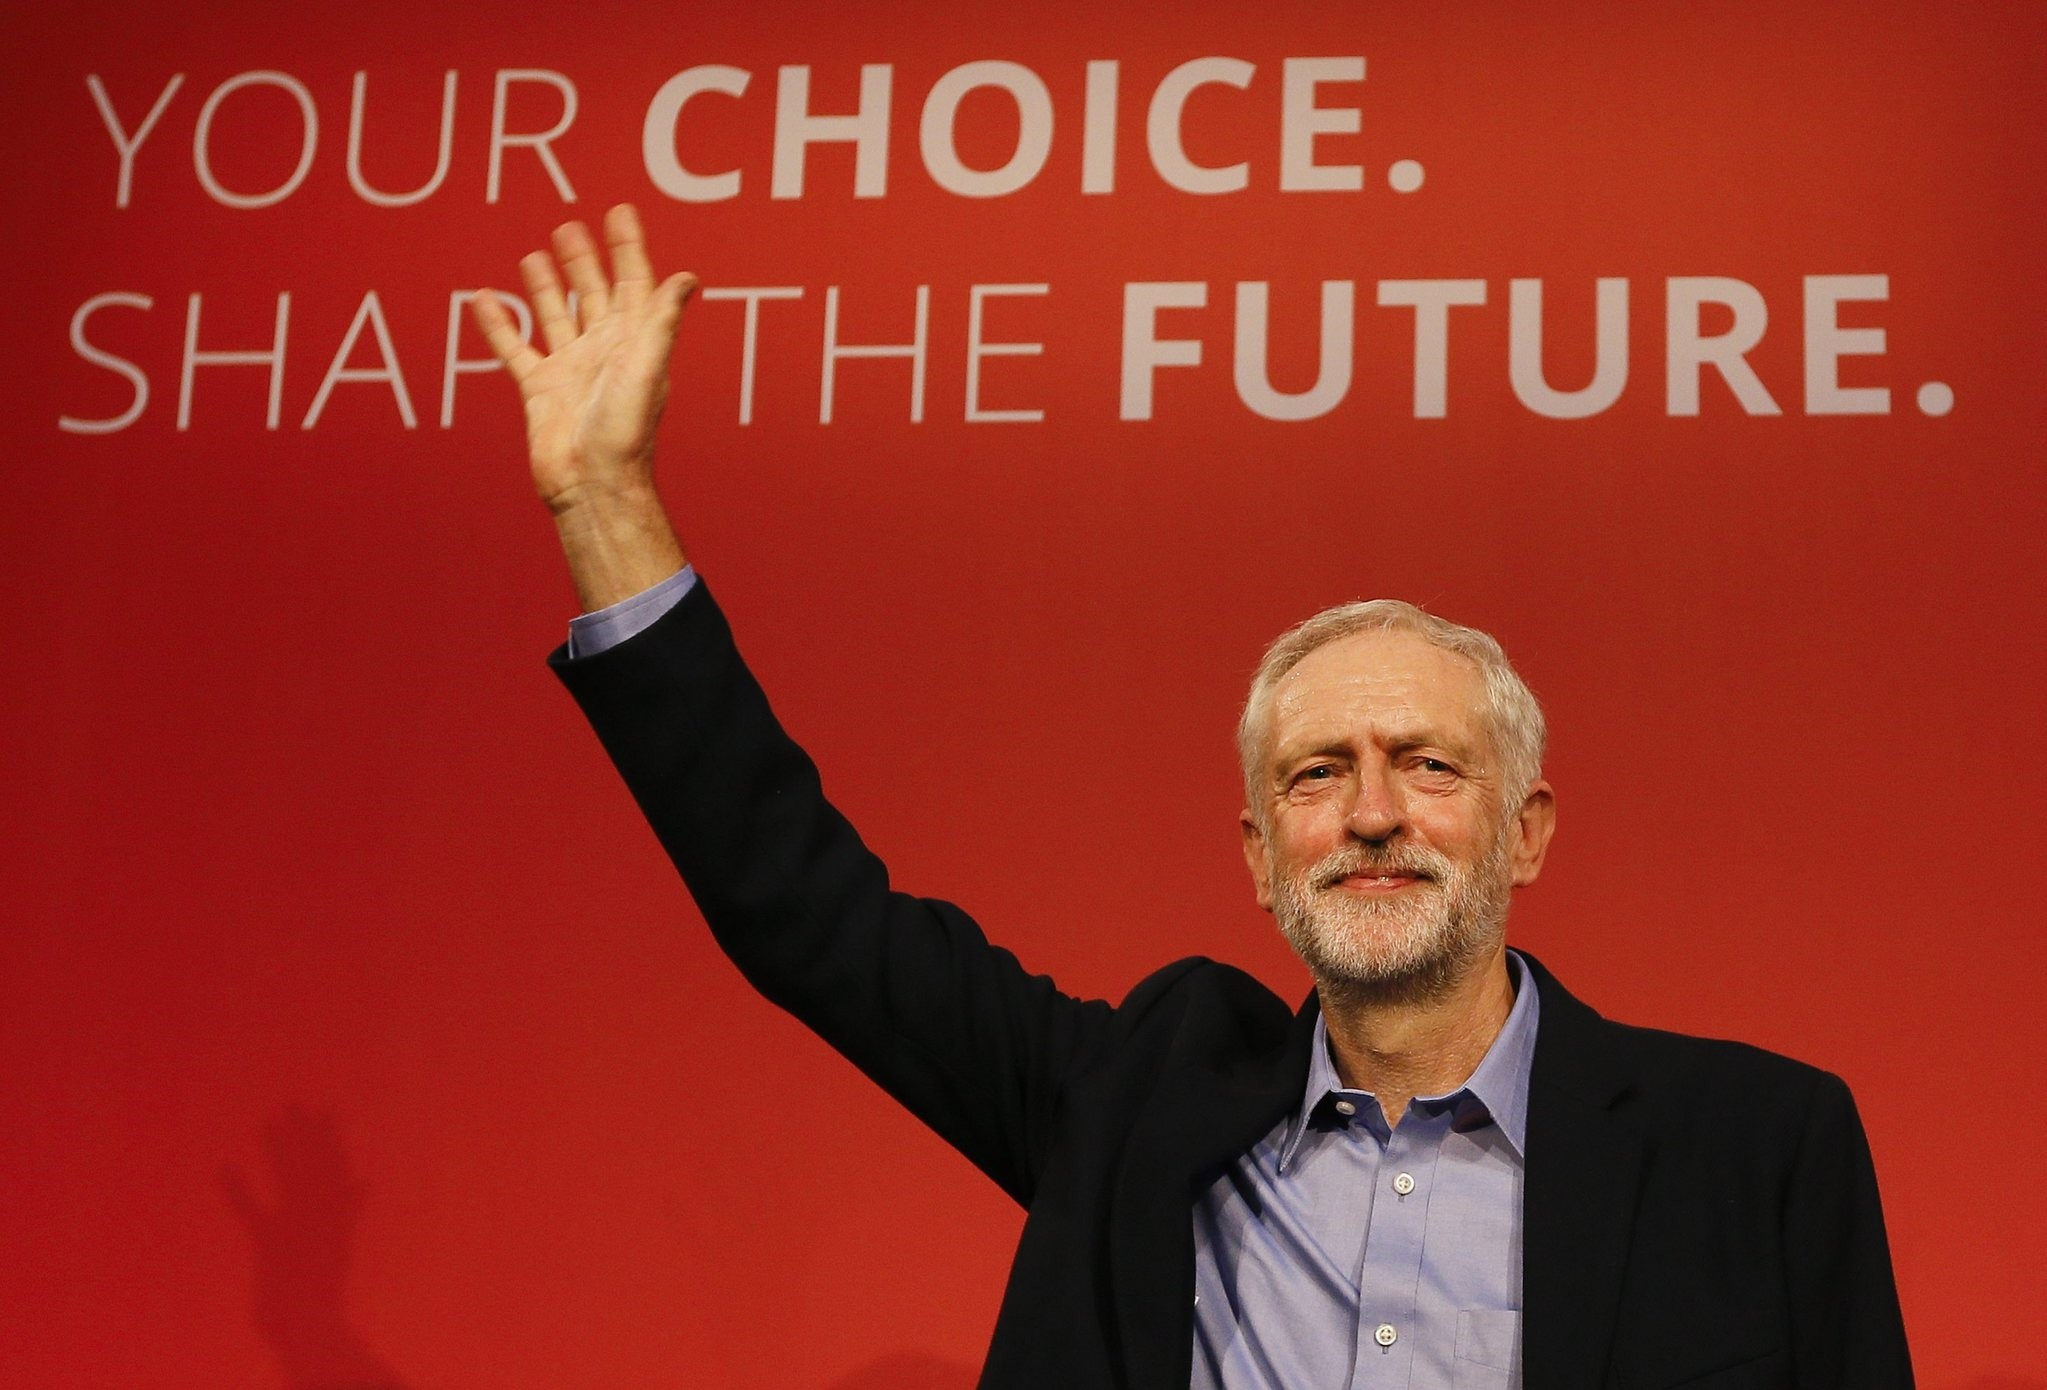 Jeremy Corbyn waves to supporters after he is announced as the new leader of the Labour Party during the partyu2019s leadership conference, London, Sept. 12, 2015.